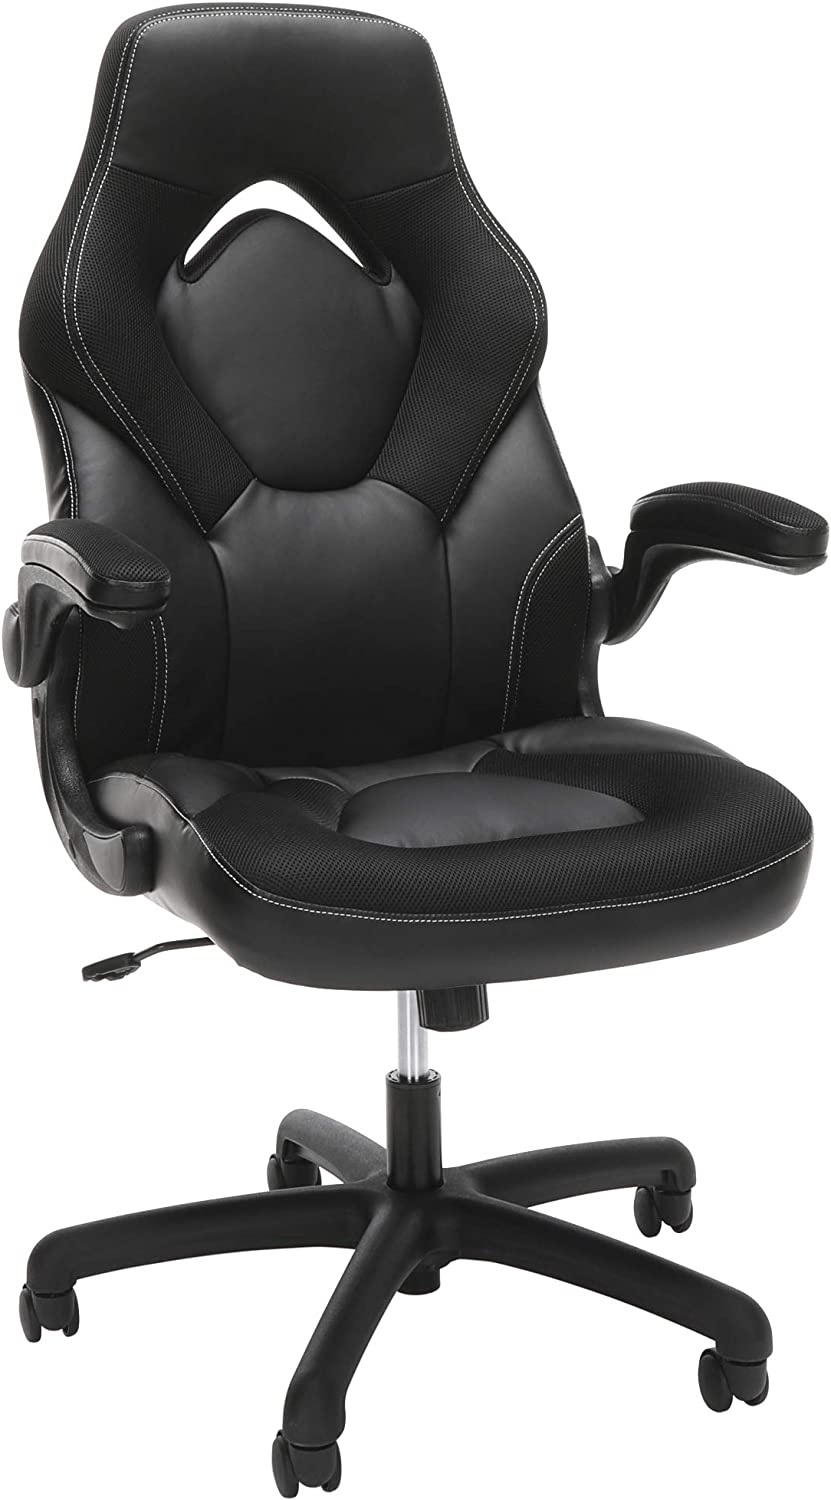 OFM Racing Style Bonded Leather Gaming Chair, in Black (ESS-3085-BLK)